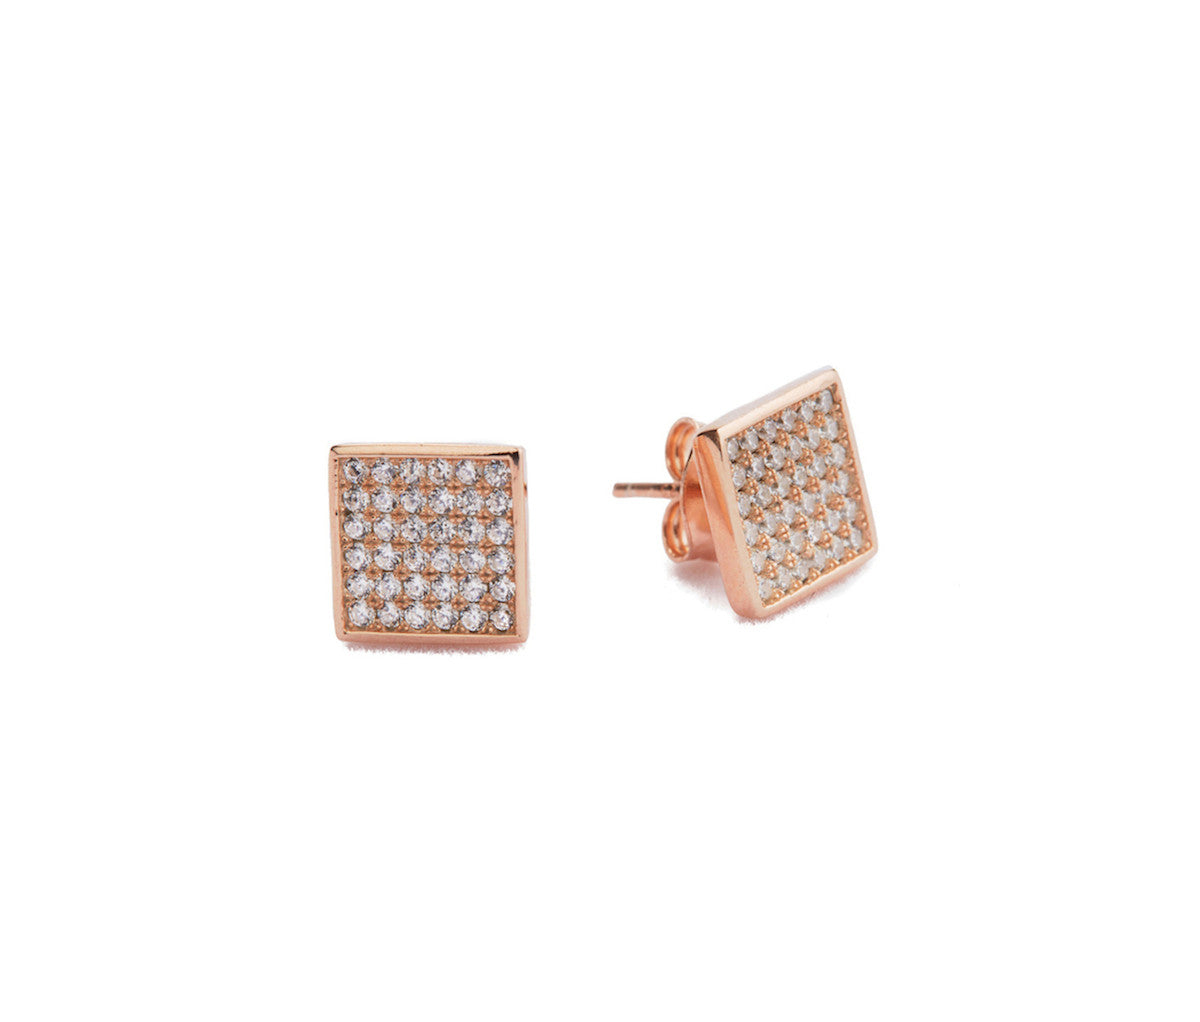 Rose Gold-Plated Rombus/Square Stud Earrings